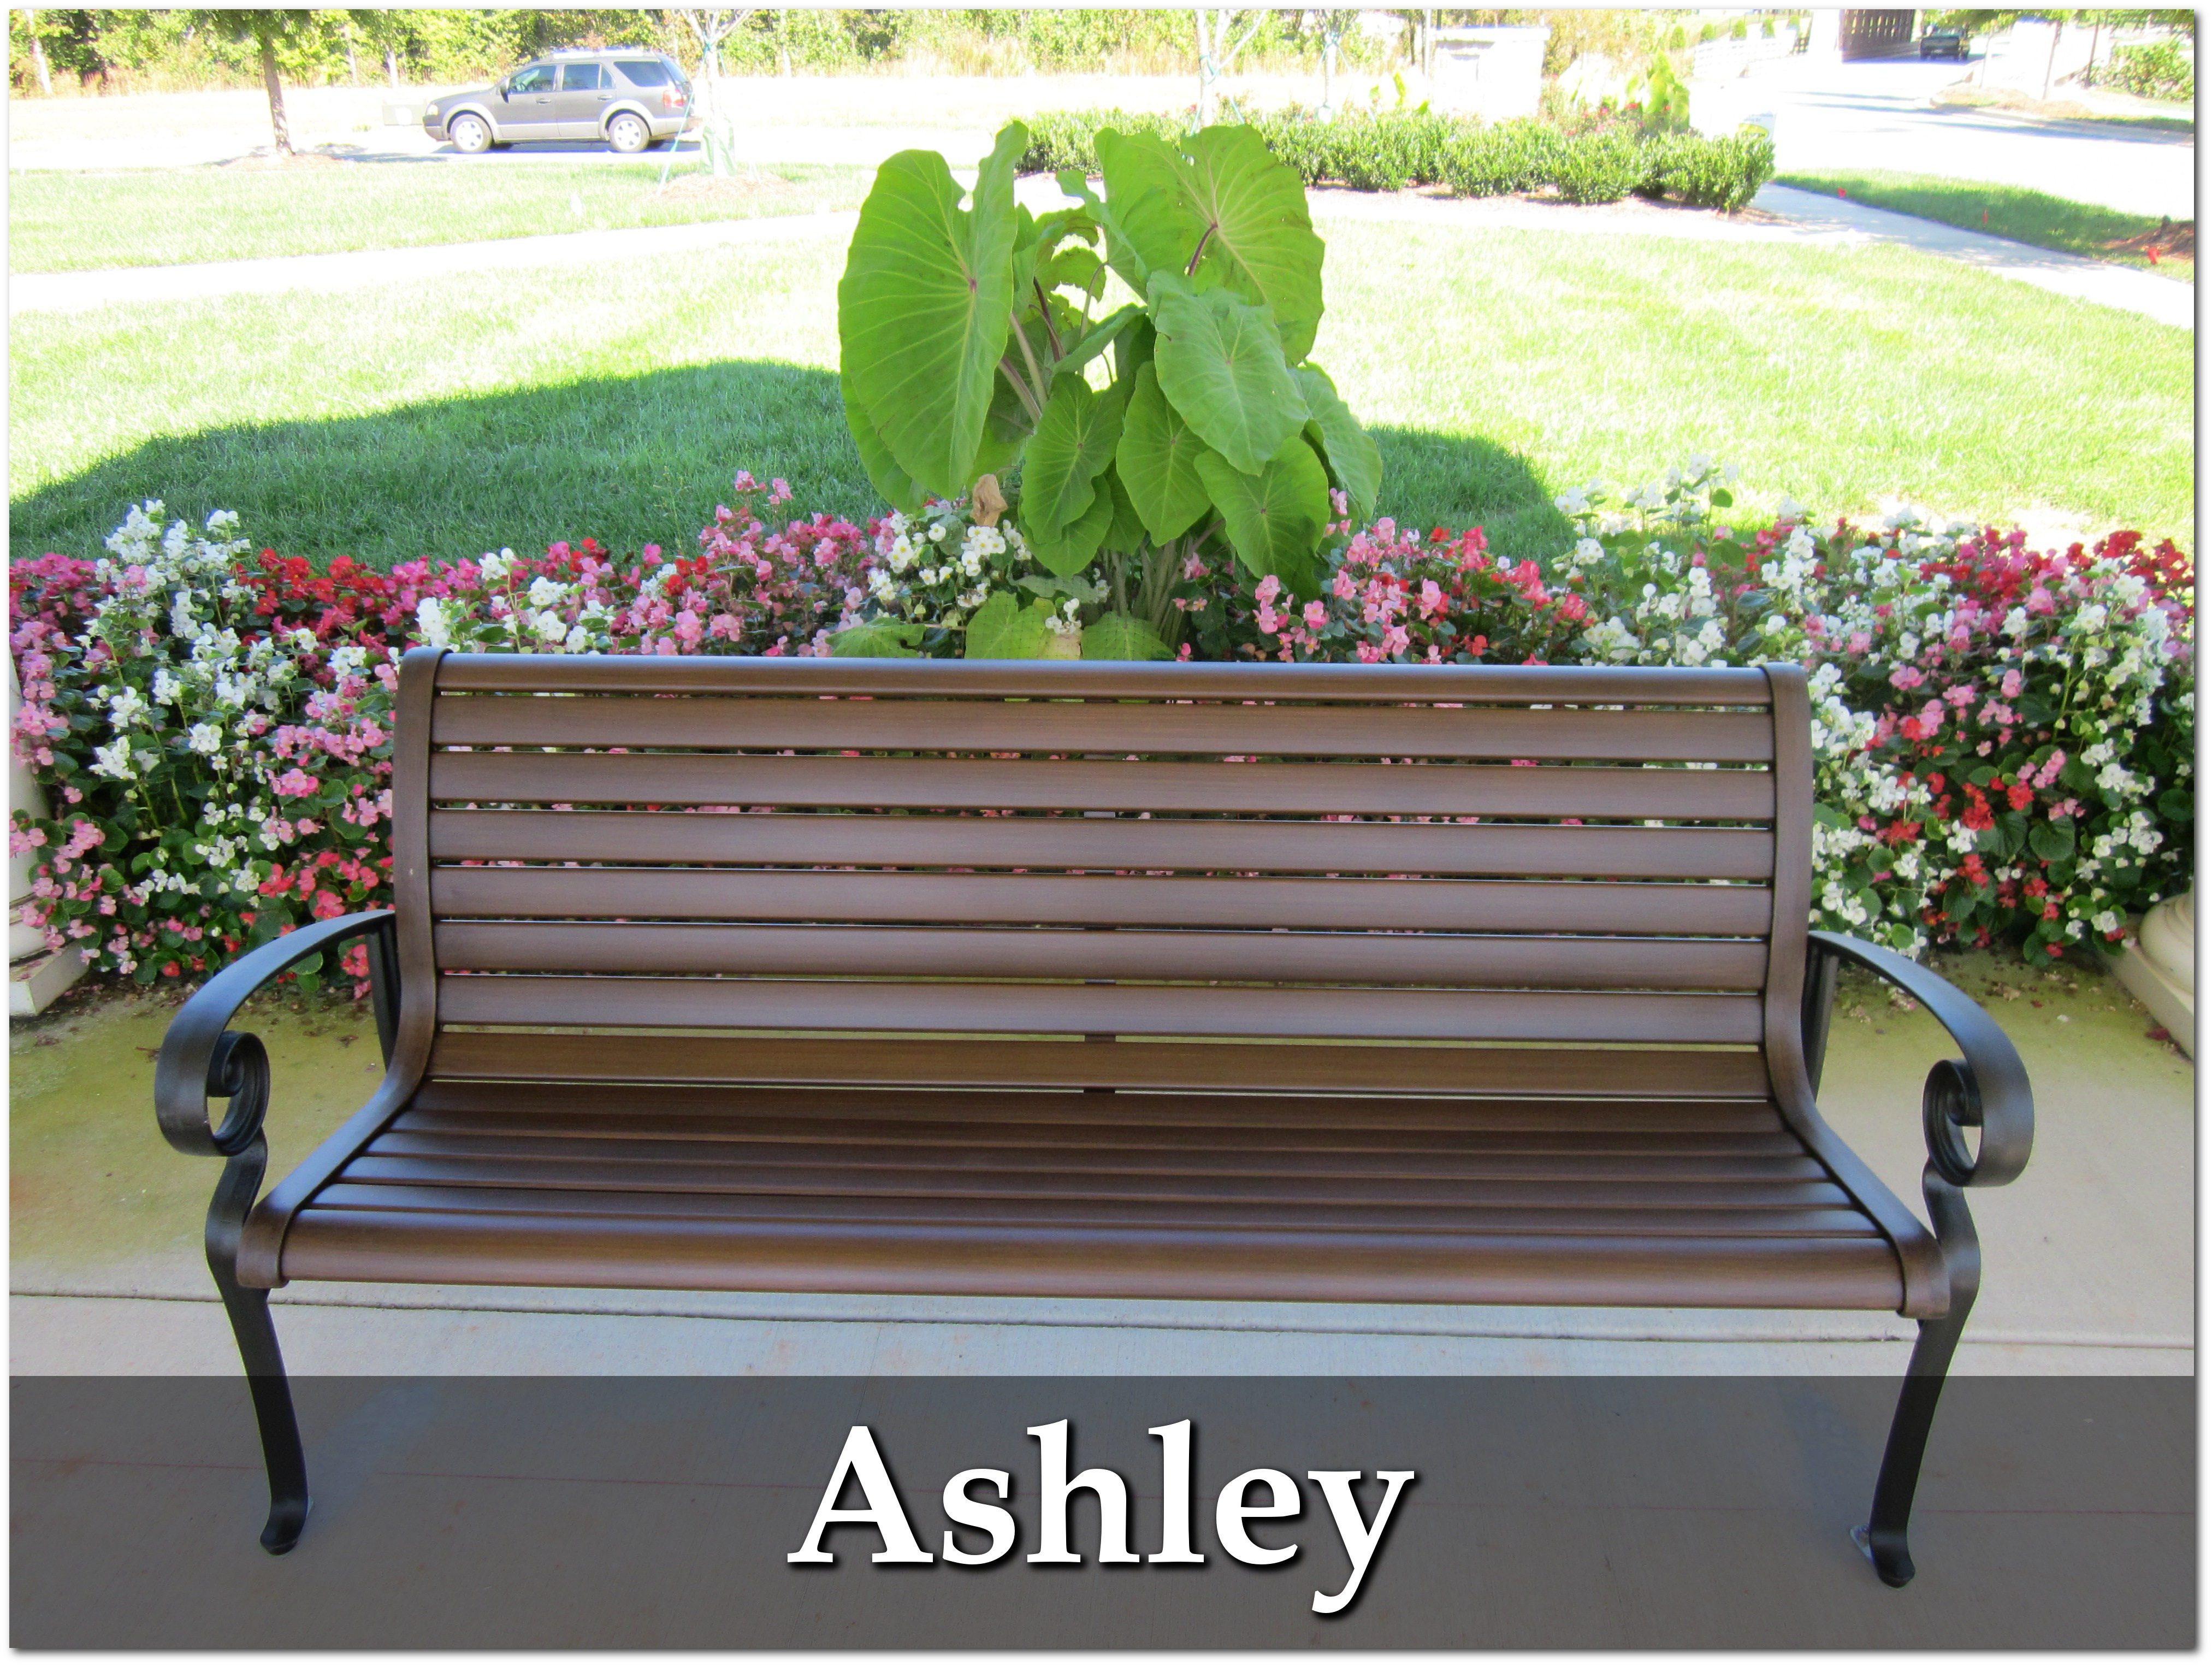 Ashley Collection Overview